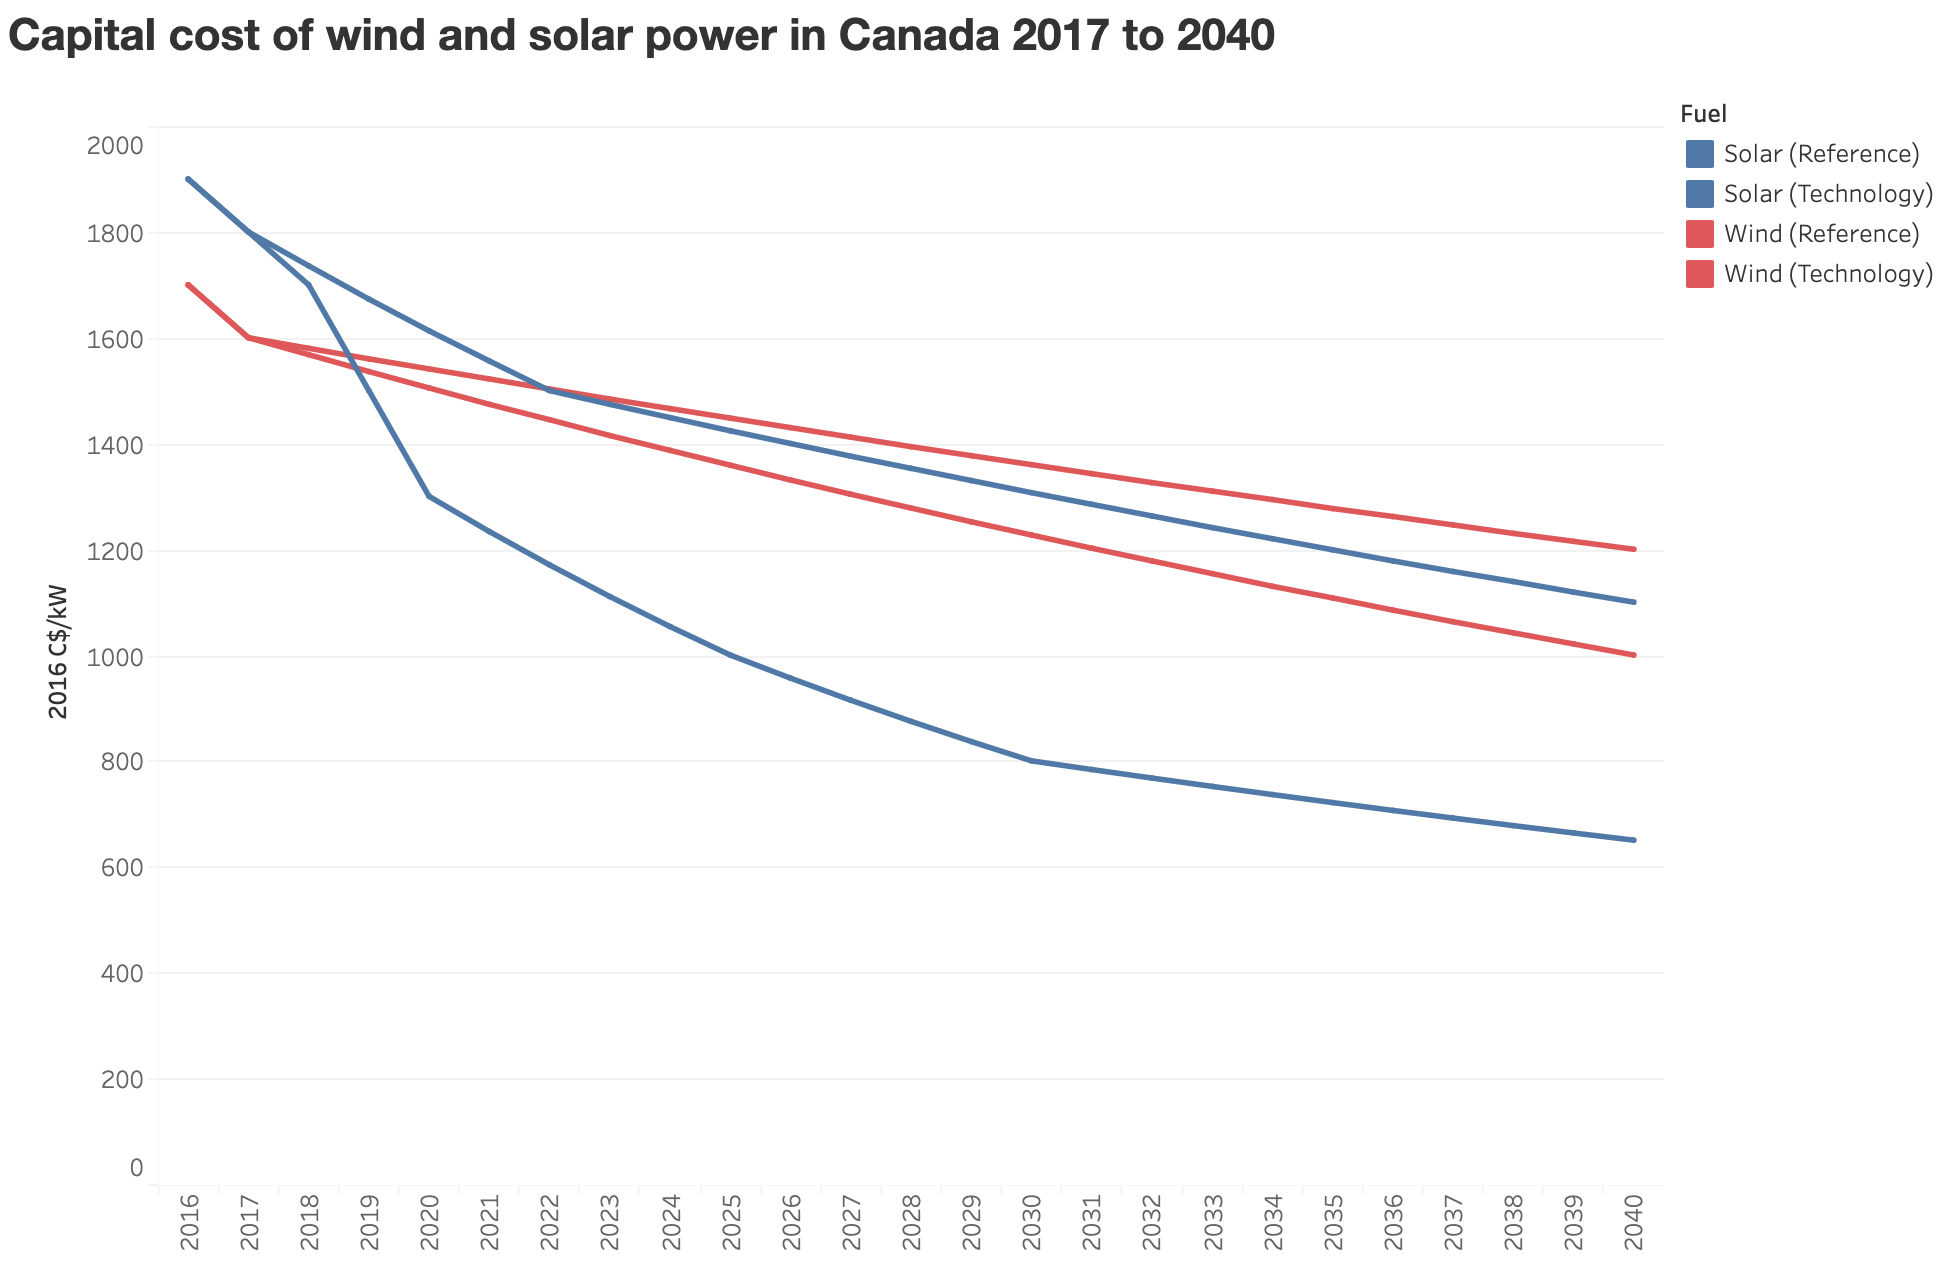 Graph of capital cost of wind and solar power in Canada